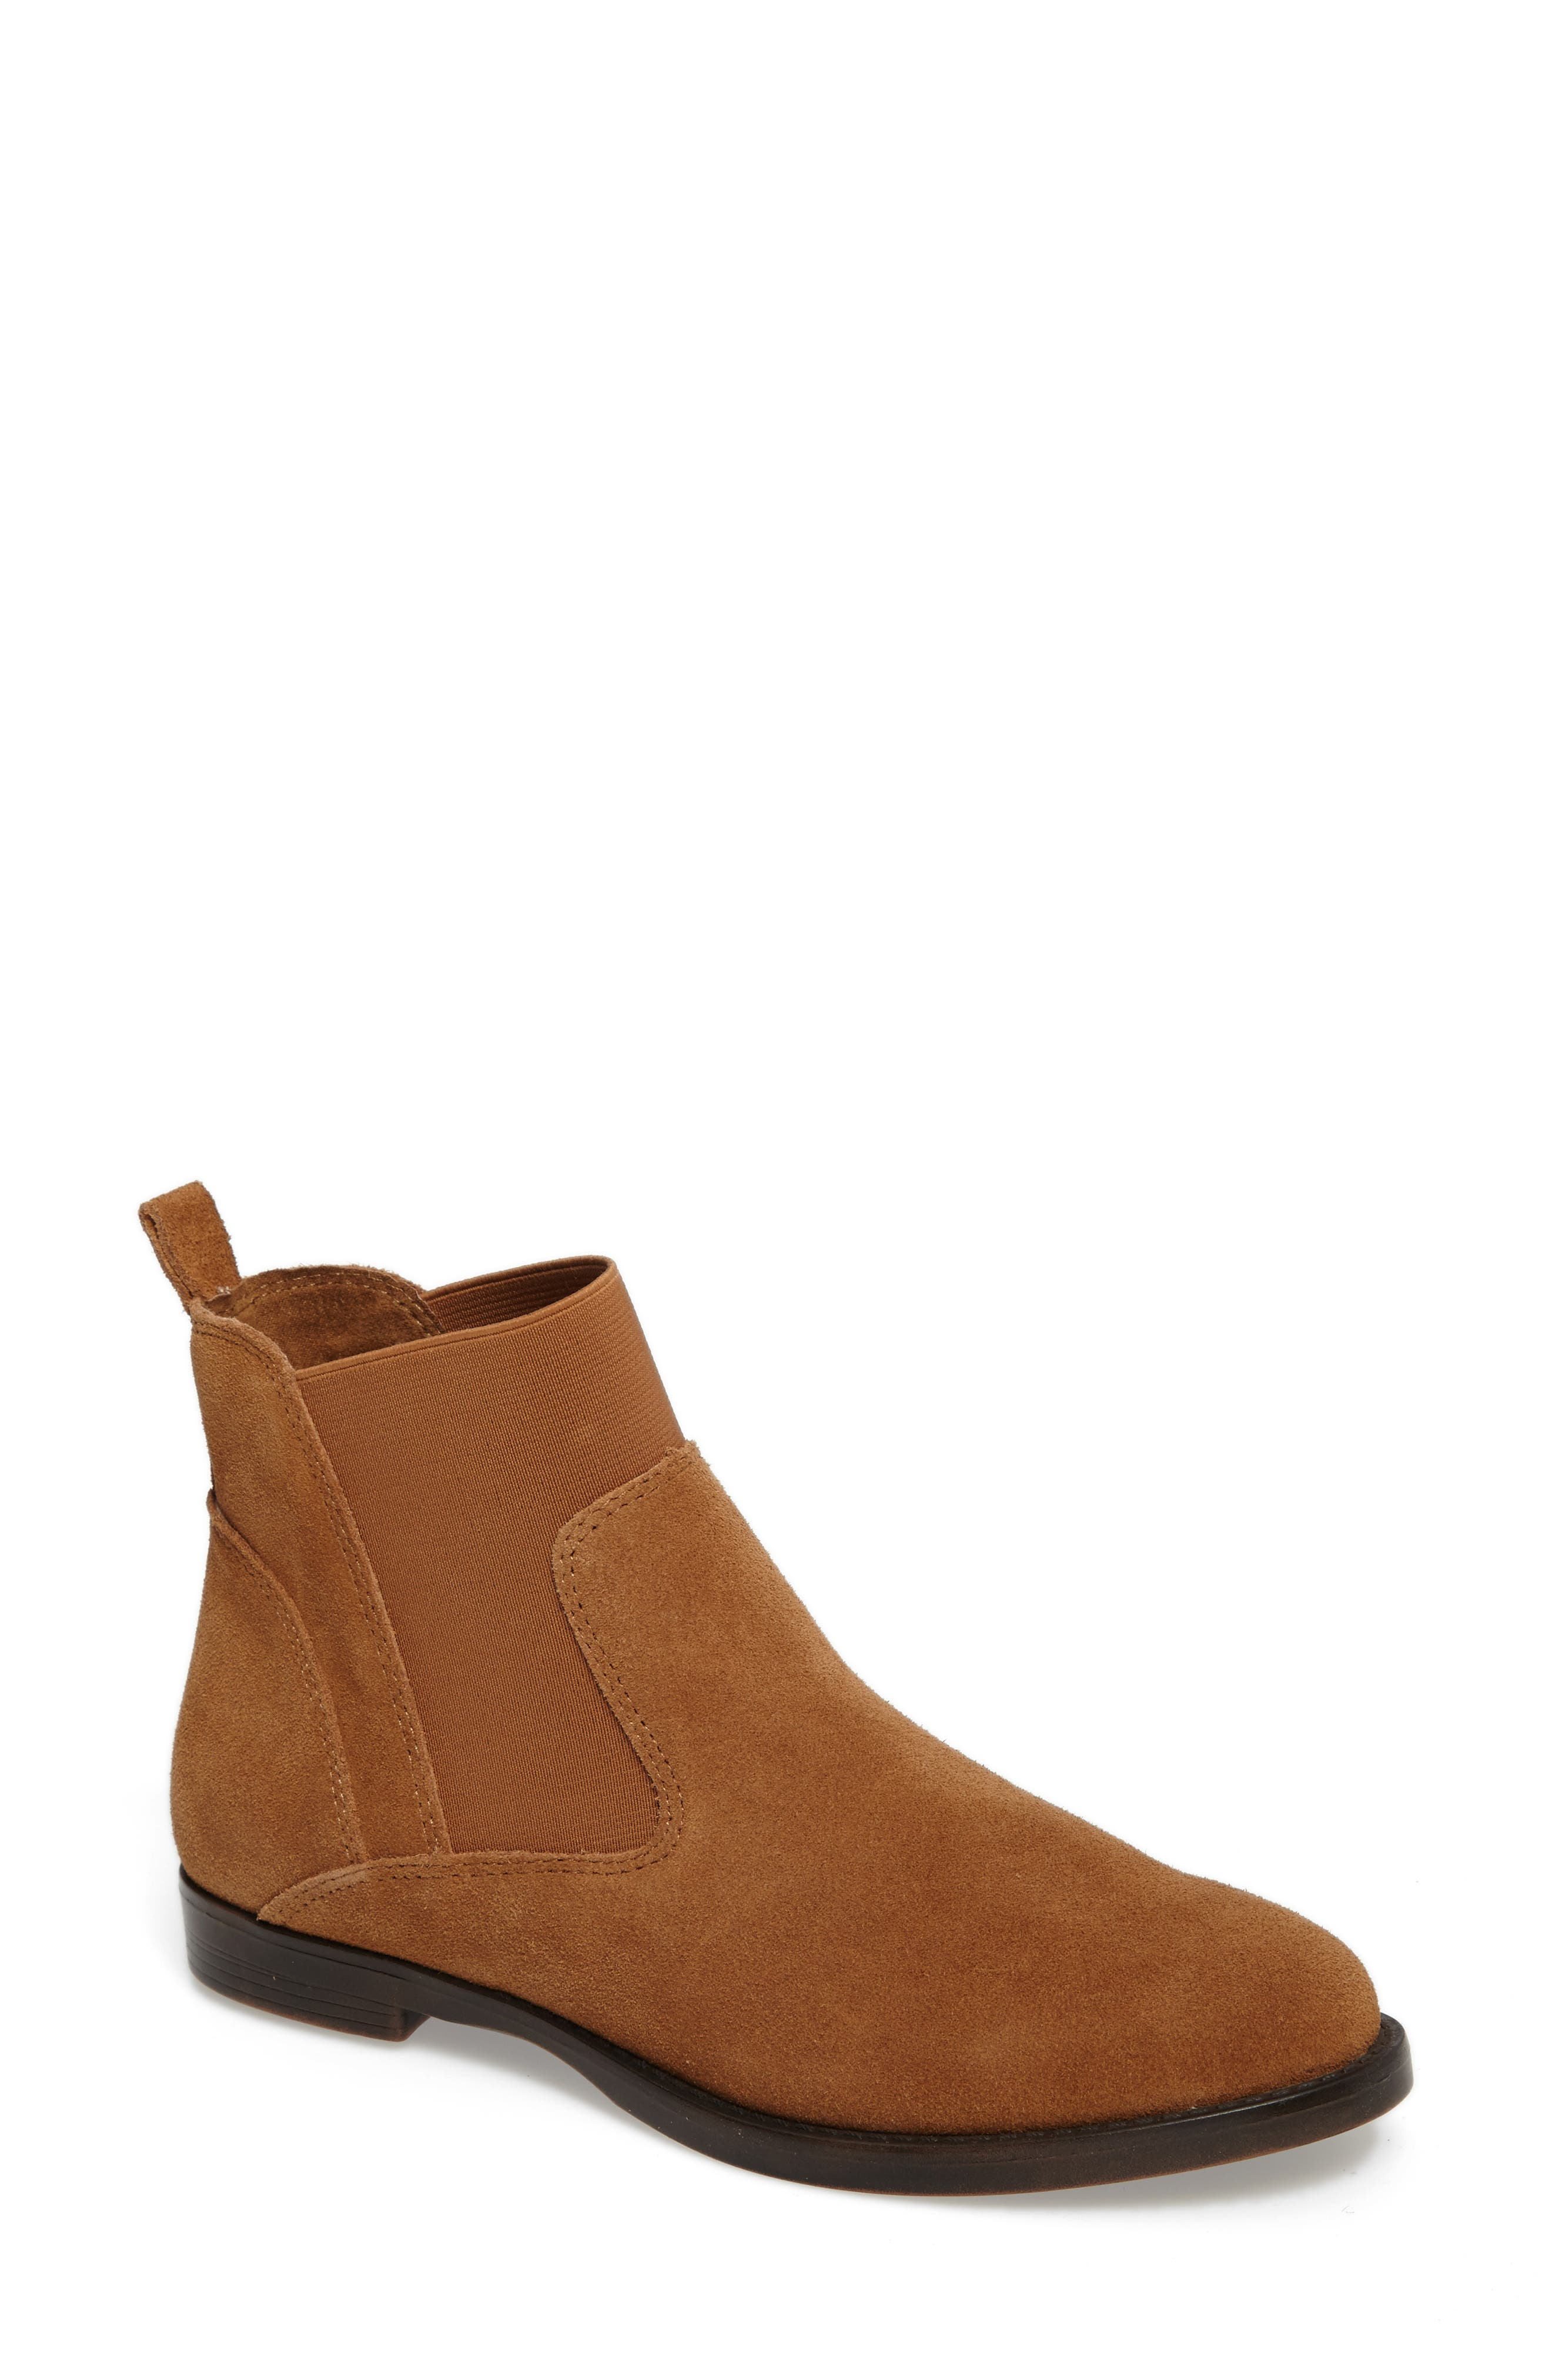 Rayna Chelsea Boot,                         Main,                         color, Tan Suede